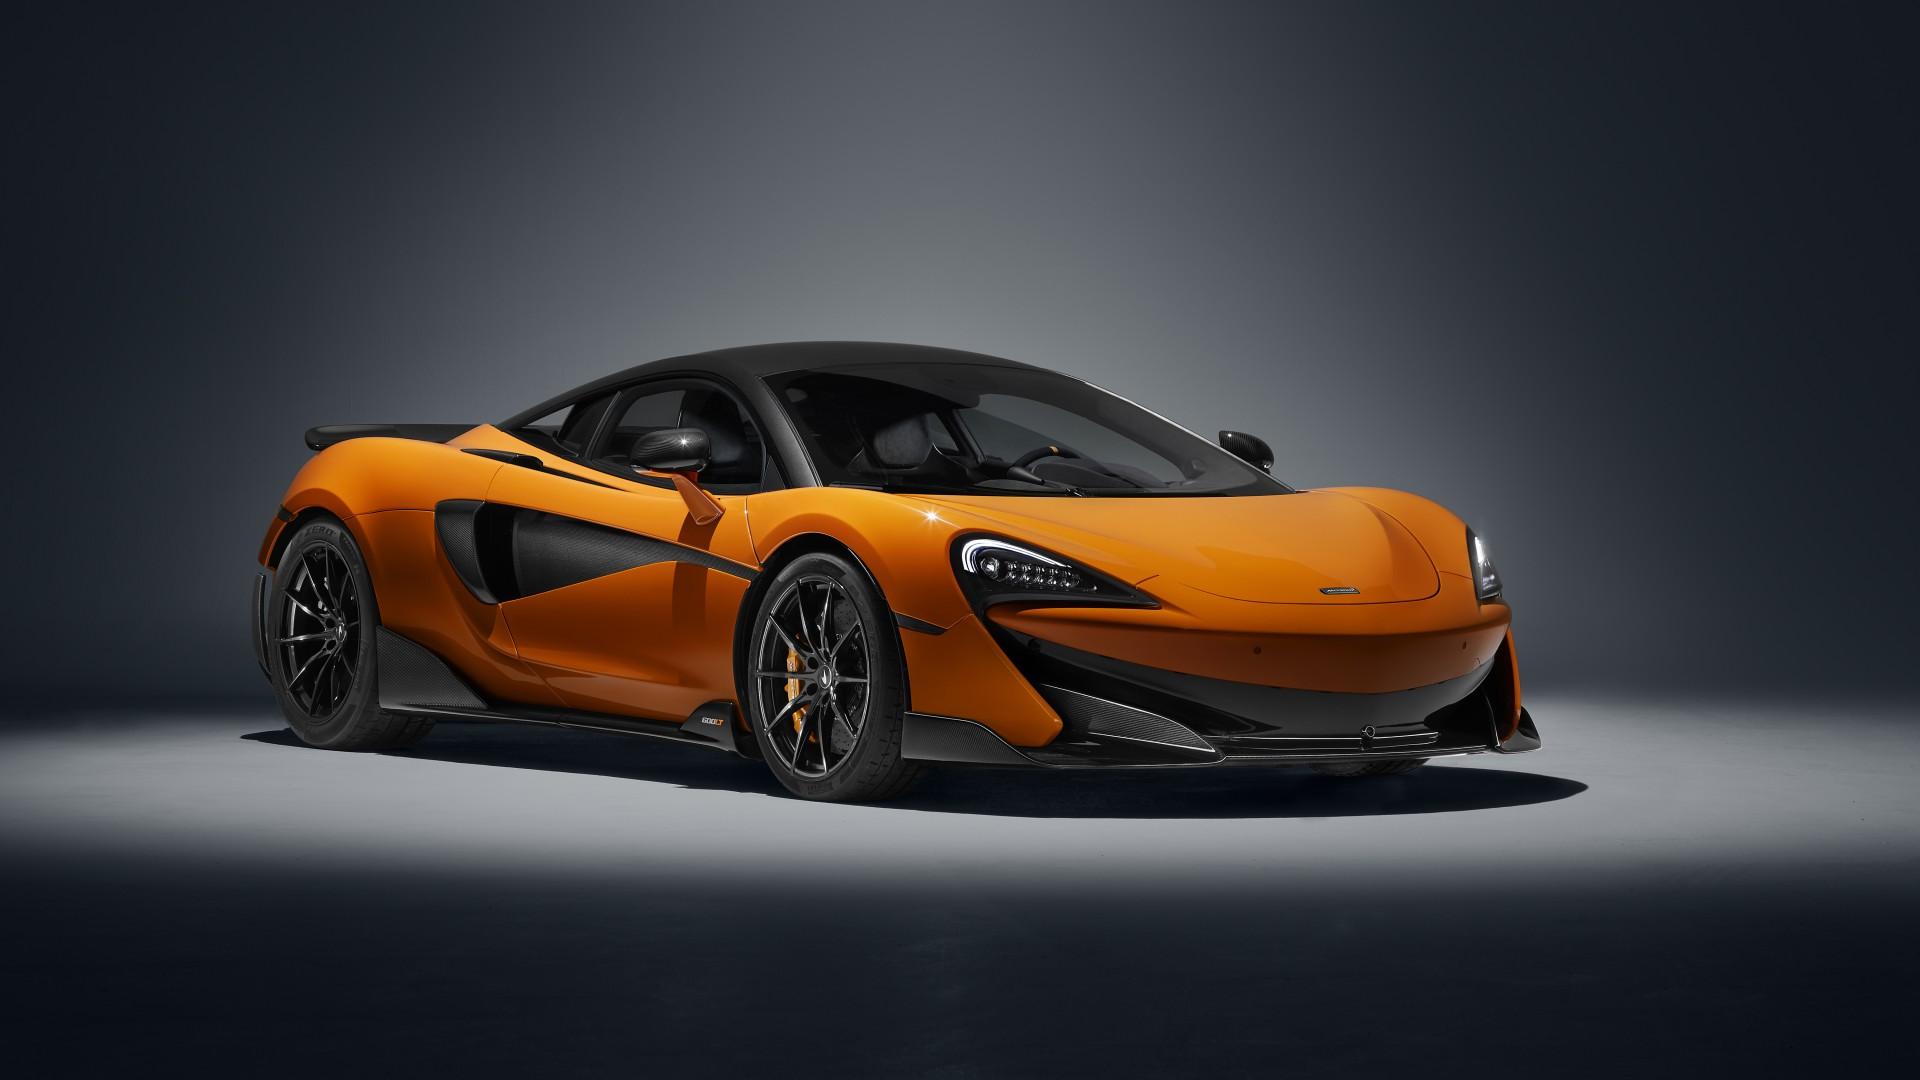 2019 McLaren 600LT 5K Wallpaper | HD Car Wallpapers | ID #10837